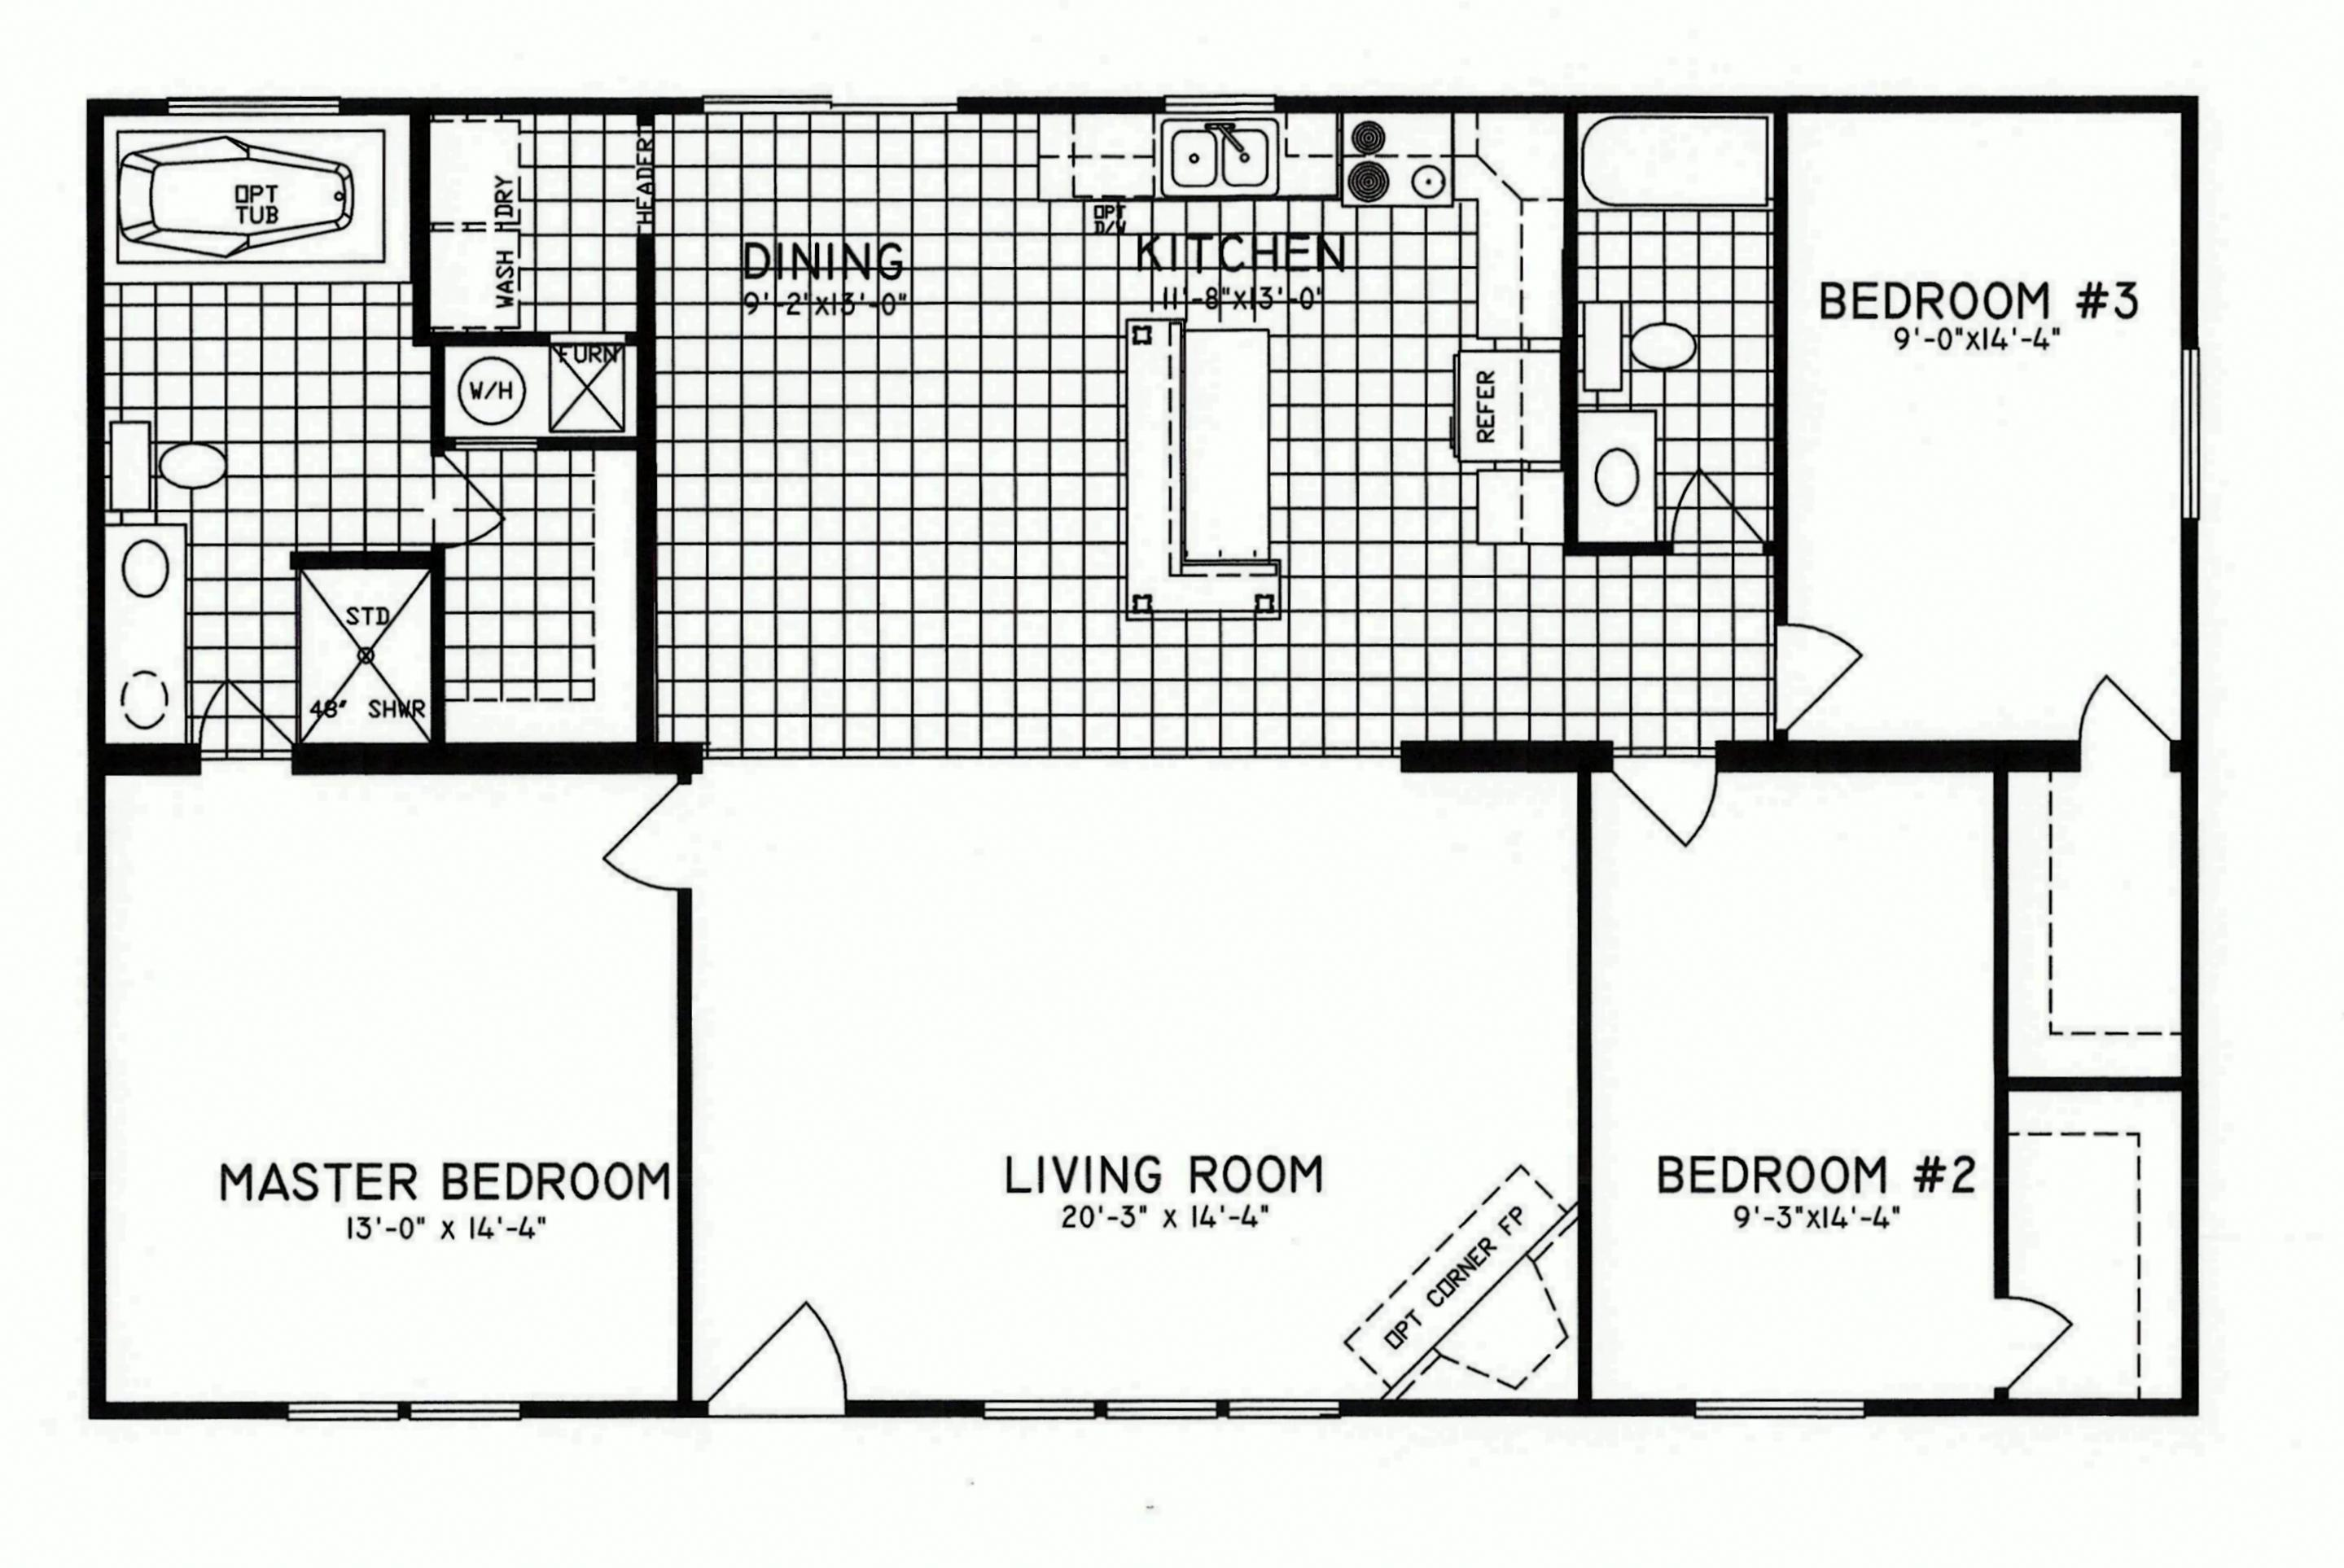 3 bedroom floor plan c 8206 hawks homes manufactured 3 bedroom modular home floor plans